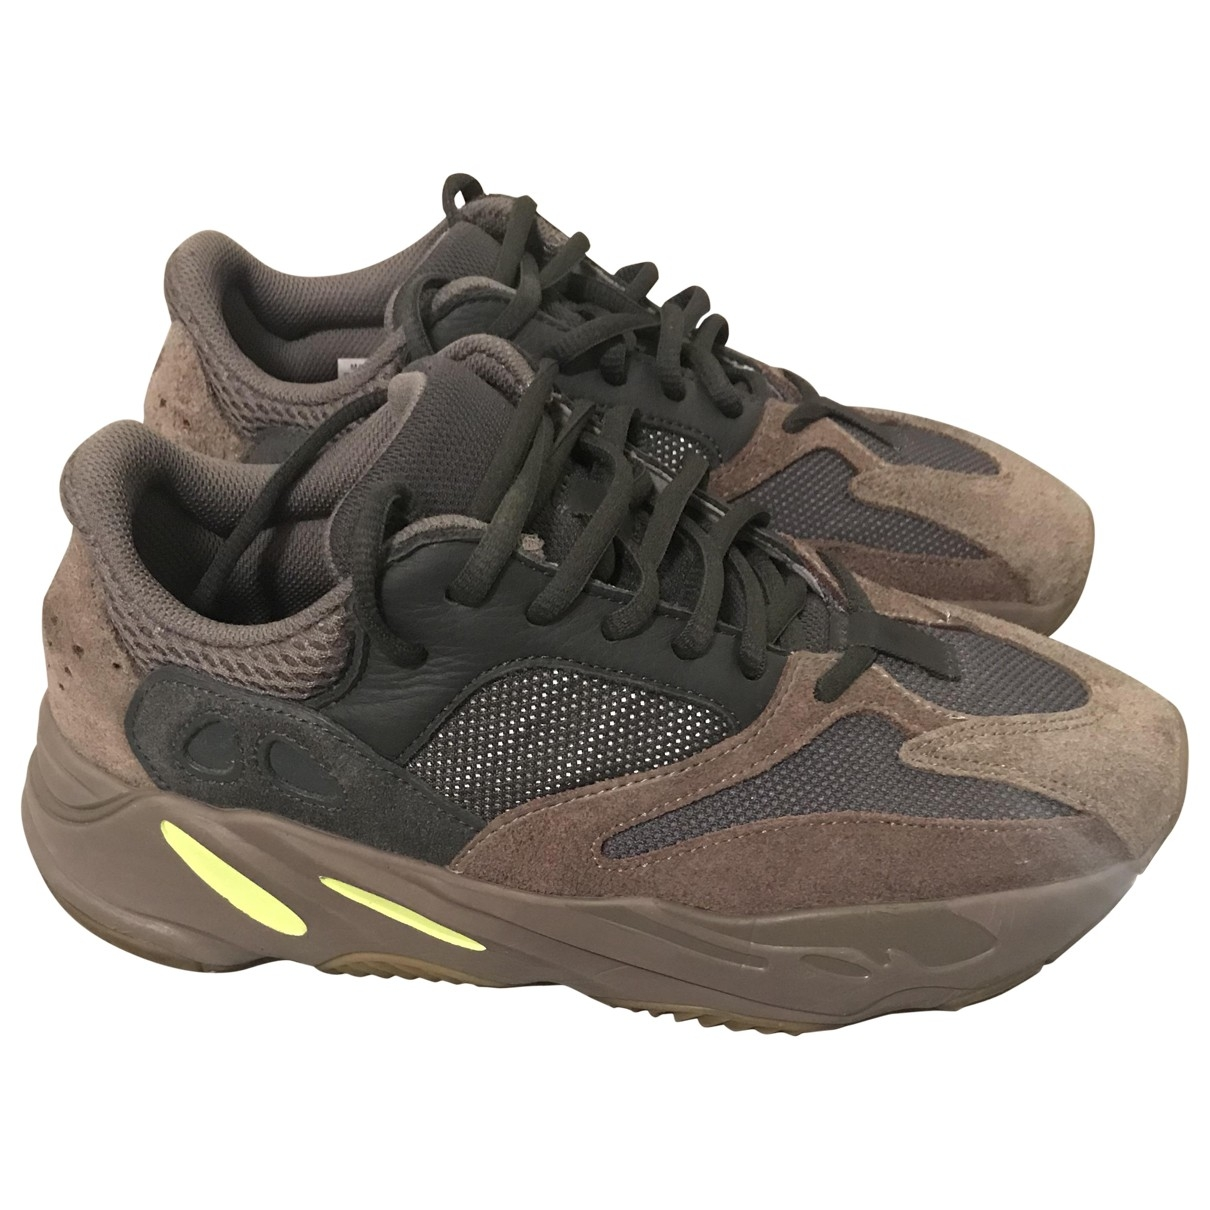 Yeezy X Adidas - Baskets Boost 700 V1  pour homme en suede